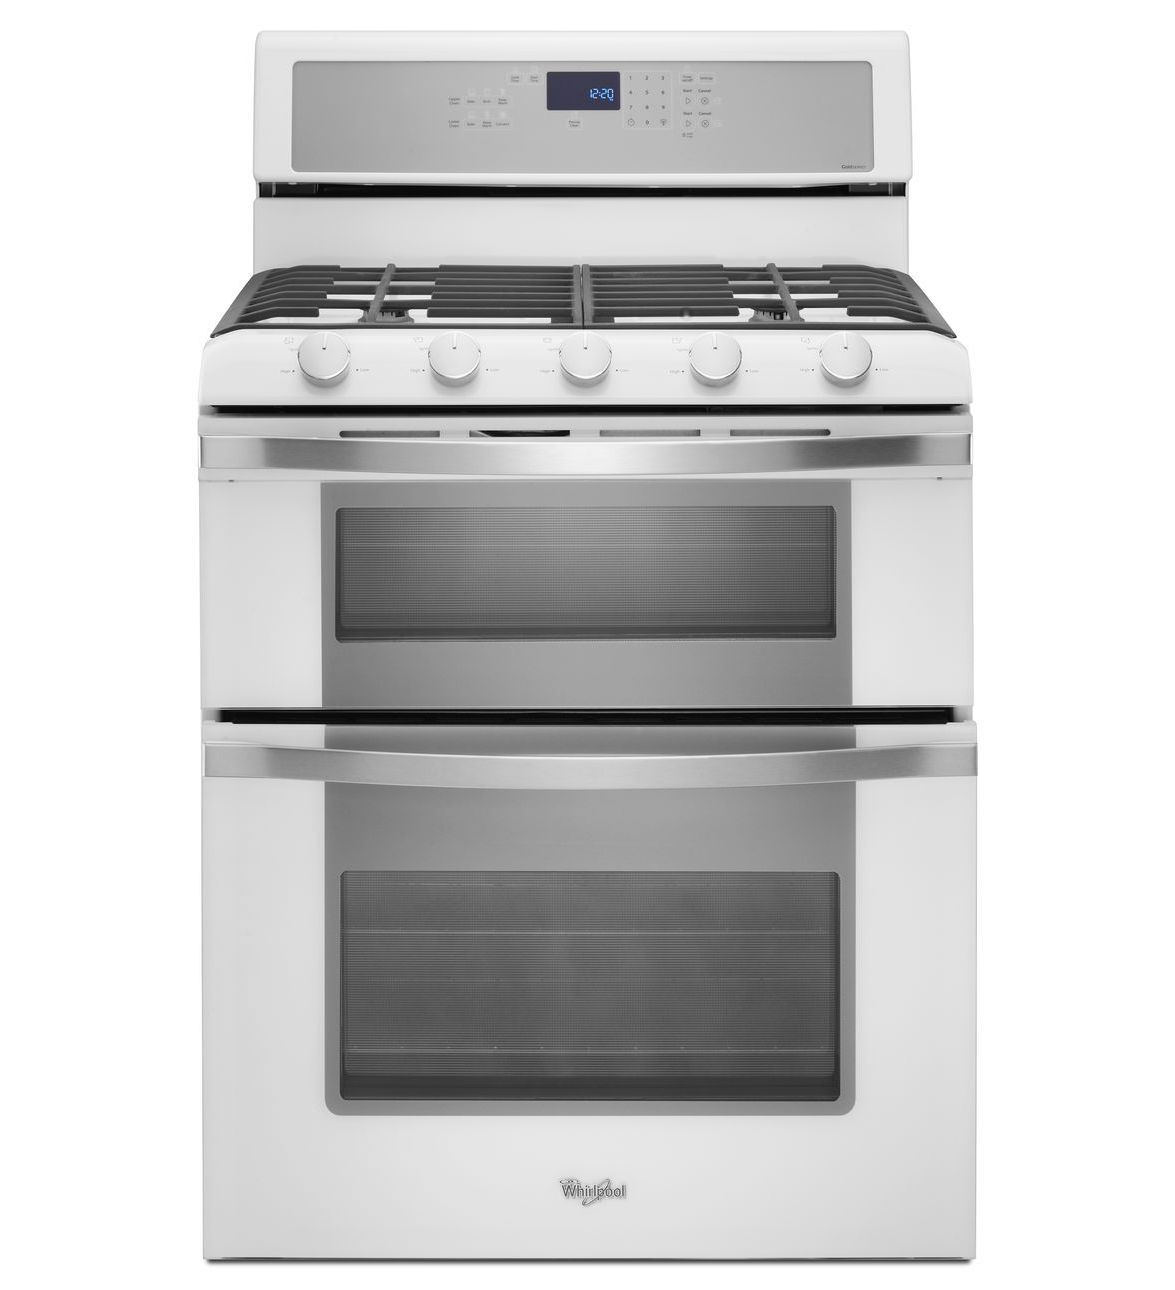 Whirlpool white ice products - Learn About Features And Specifications For The Whirlpool Products Whirlpool Total Cu Double Oven Electric Range With True Convection Cooking White Ice